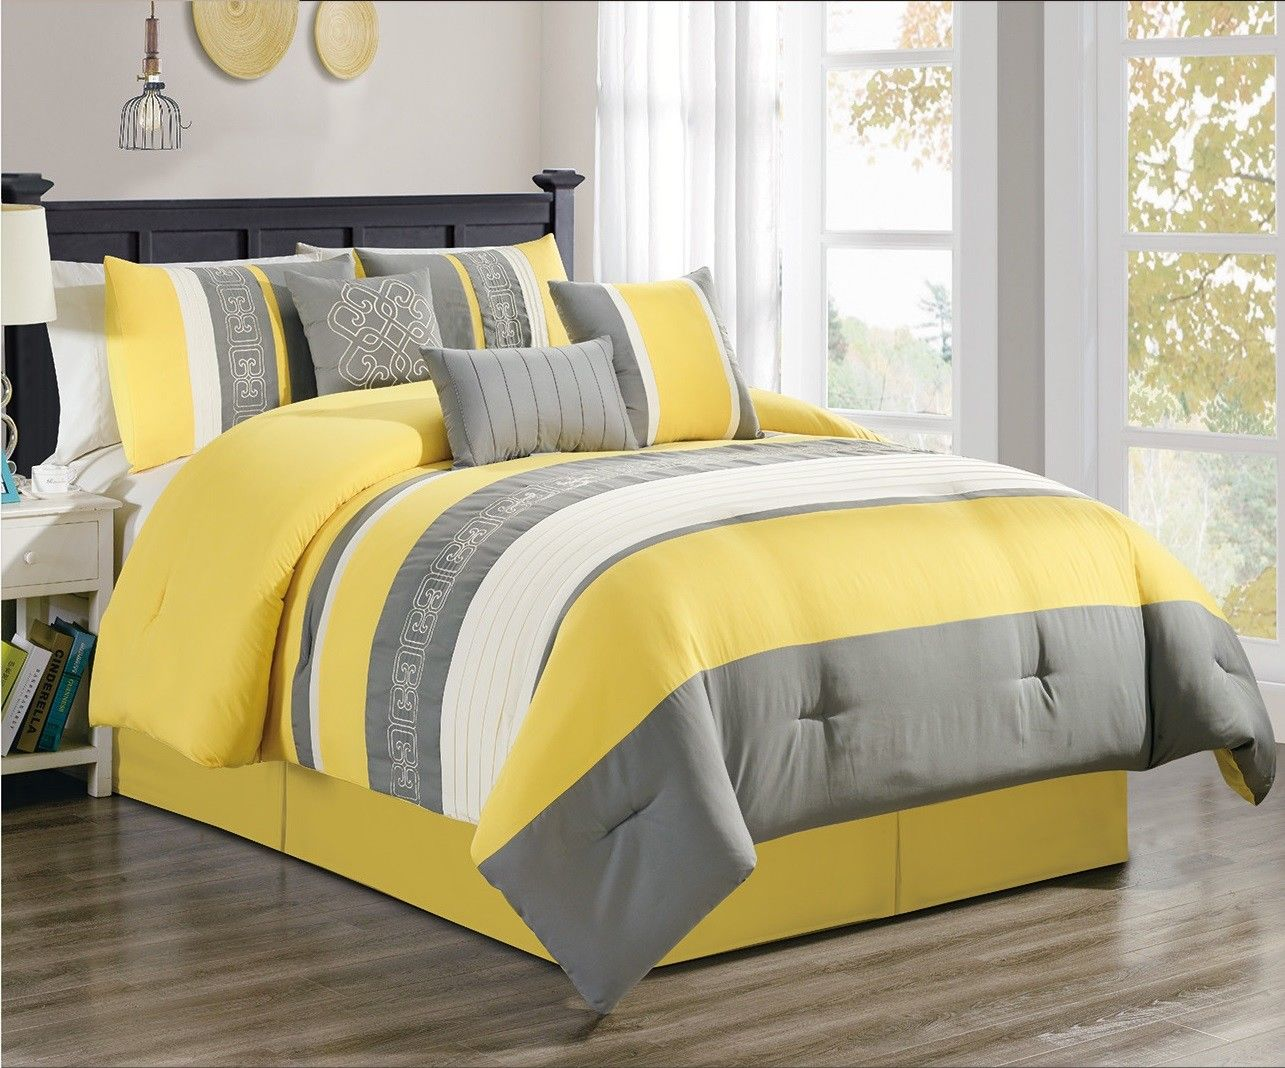 Manar 7-Piece Comforter Set Yellow & Gray Embroidered